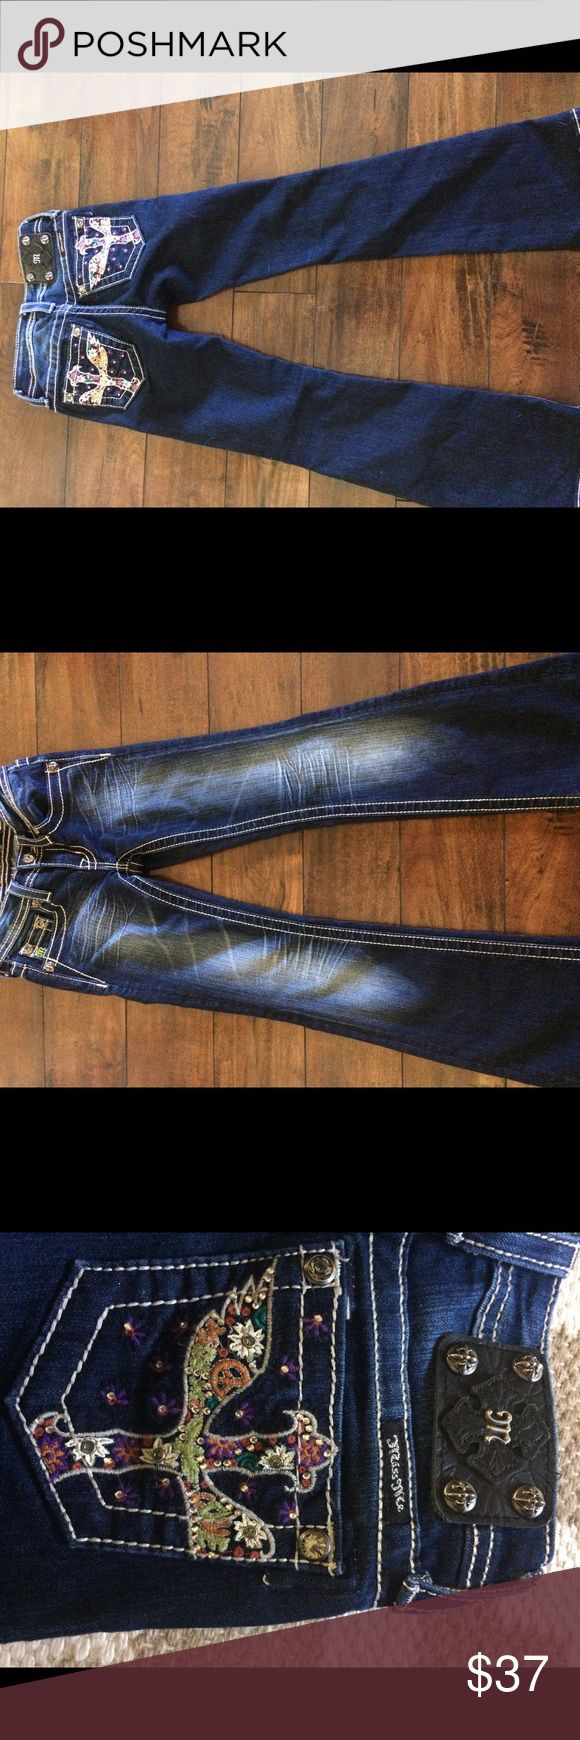 Girl's Miss Me jeans size 7 excellent condition Little girls dark blue boot cut Miss Me jeans in excellent condition. Only worn a couple times and never put in the dryer. Miss Me Bottoms Jeans